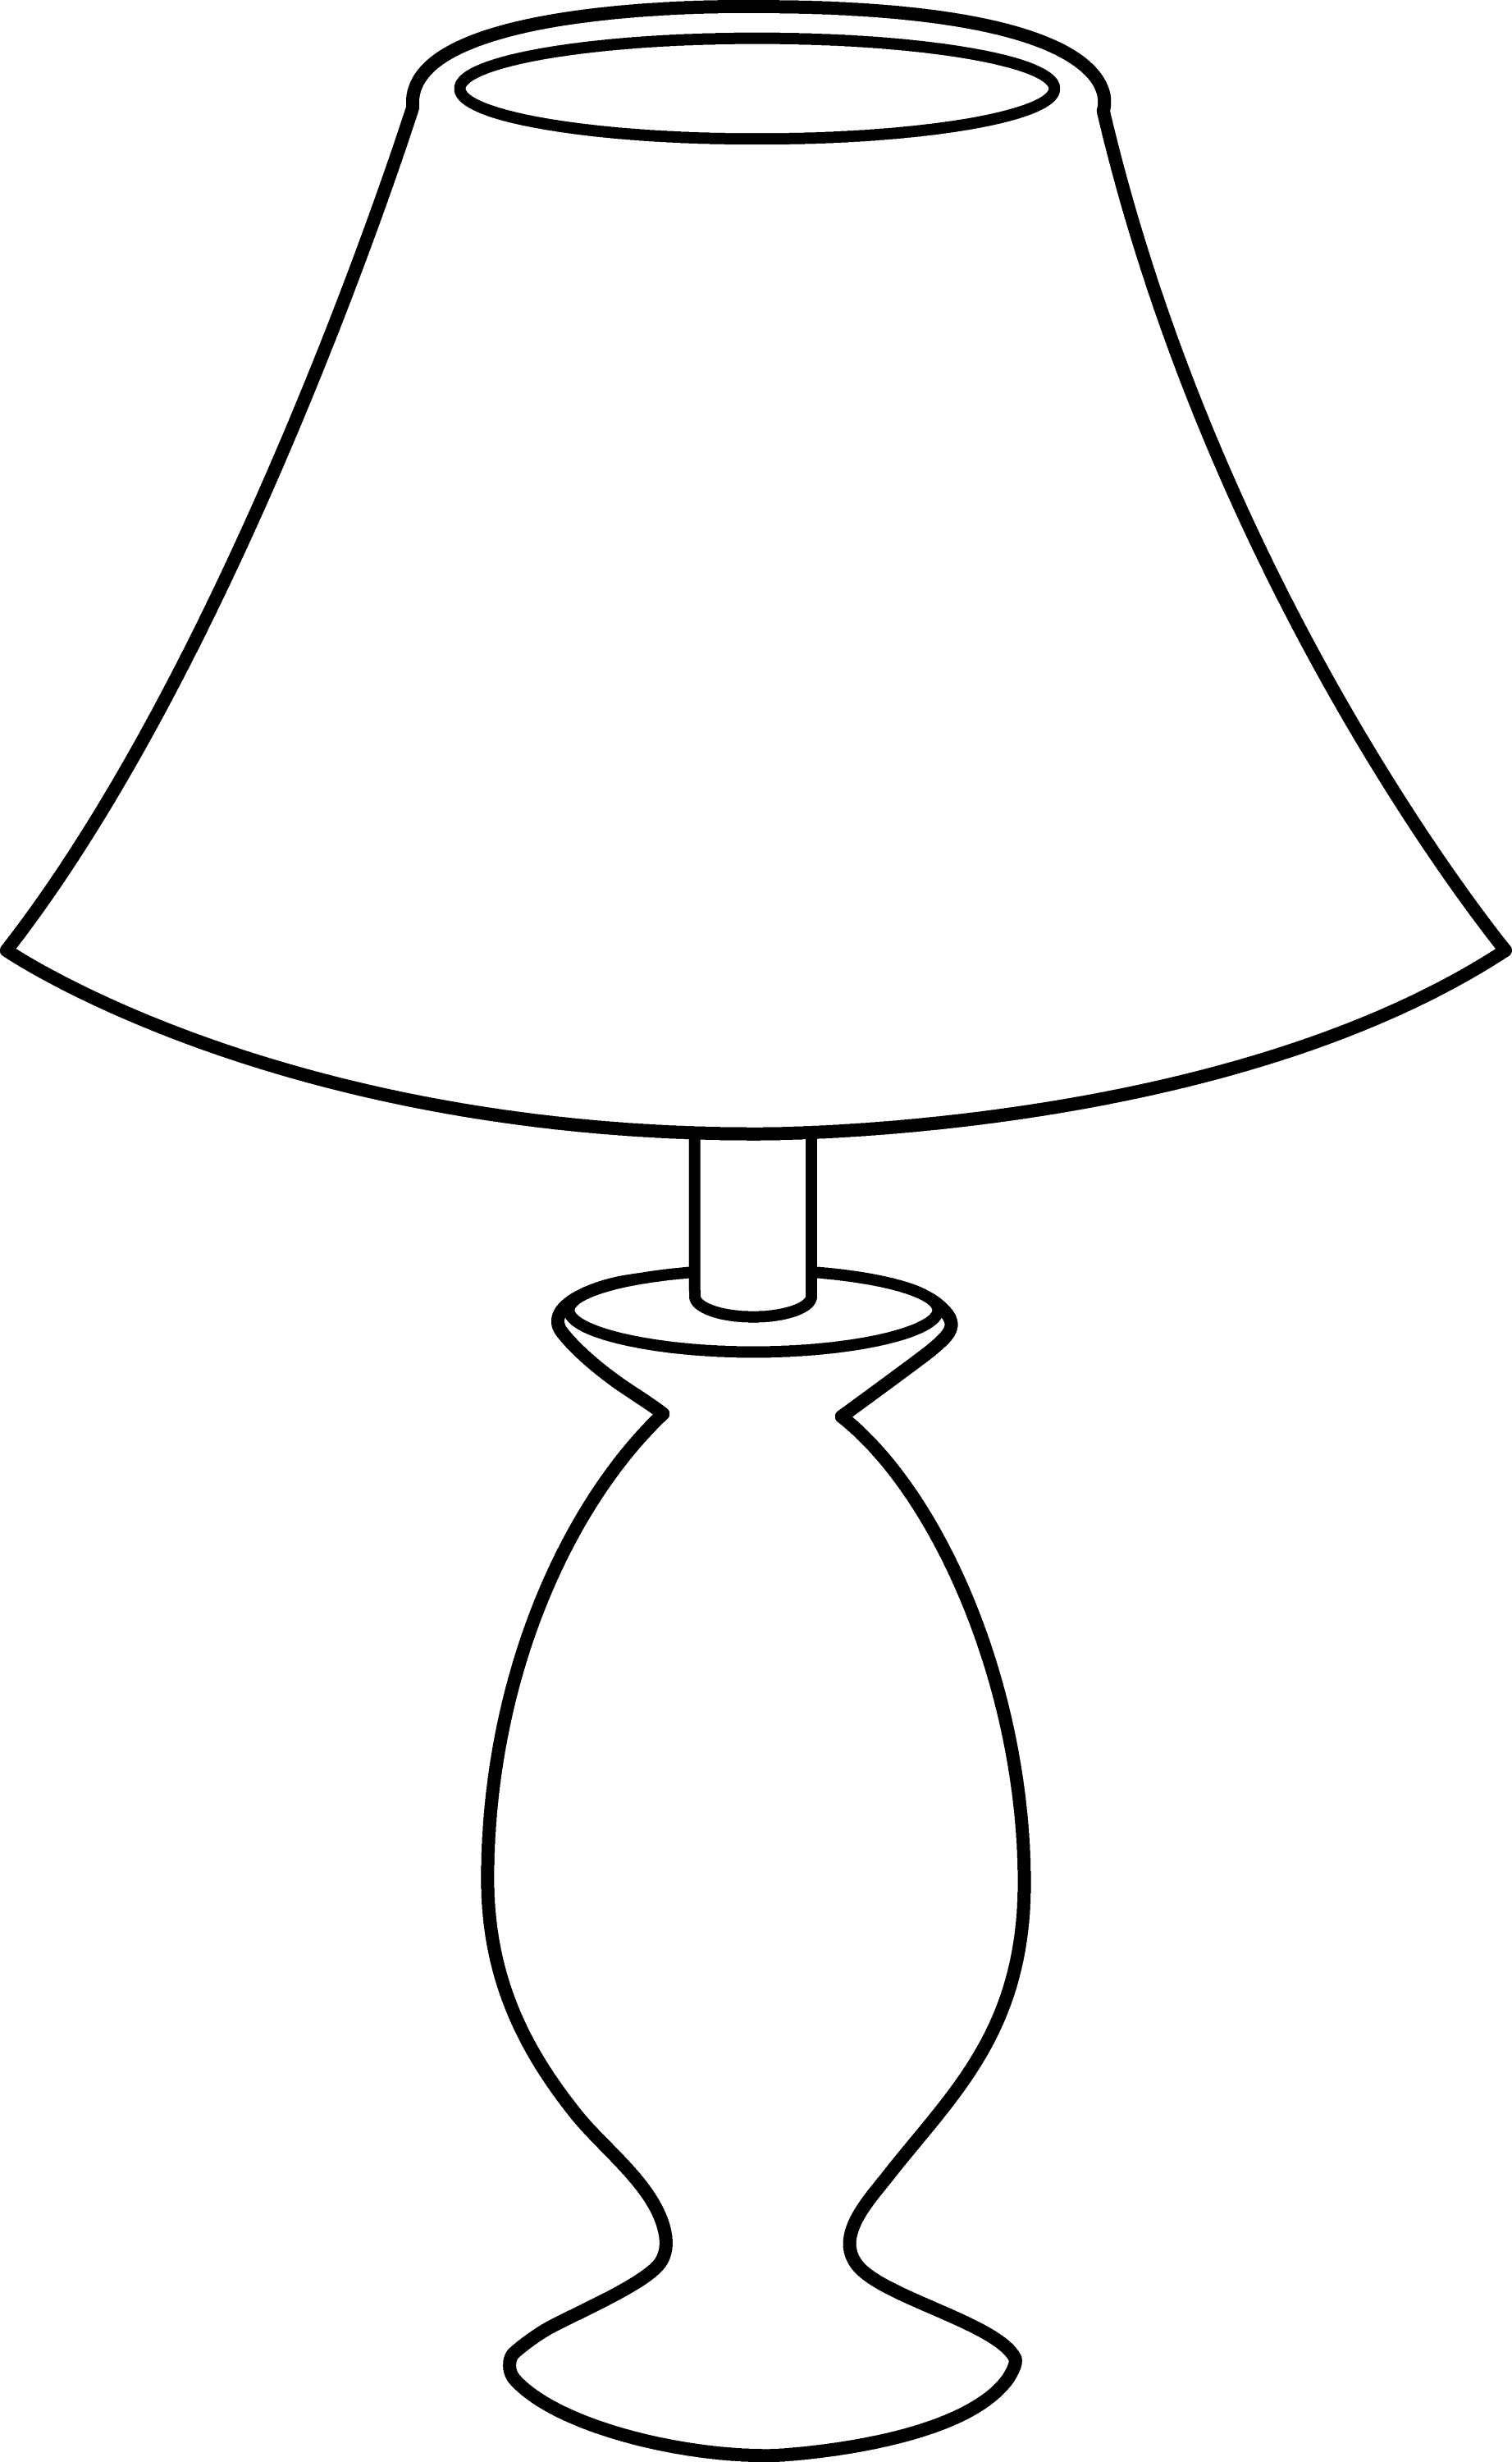 Black And White Lamp Line Art Free Clip Art